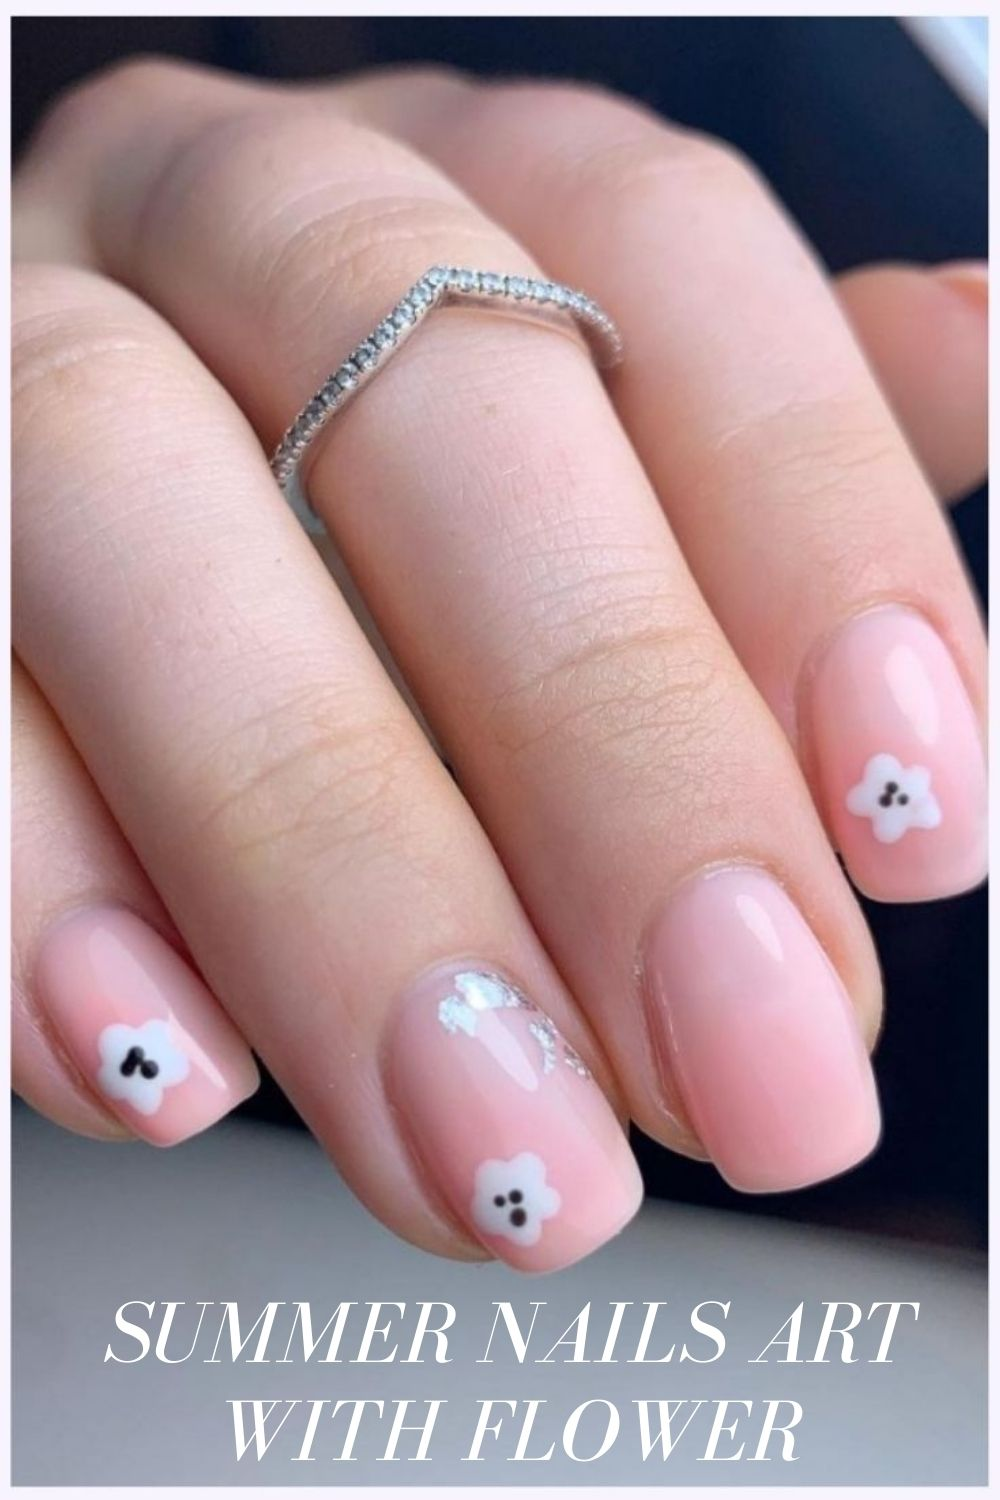 Pink and white short nails art